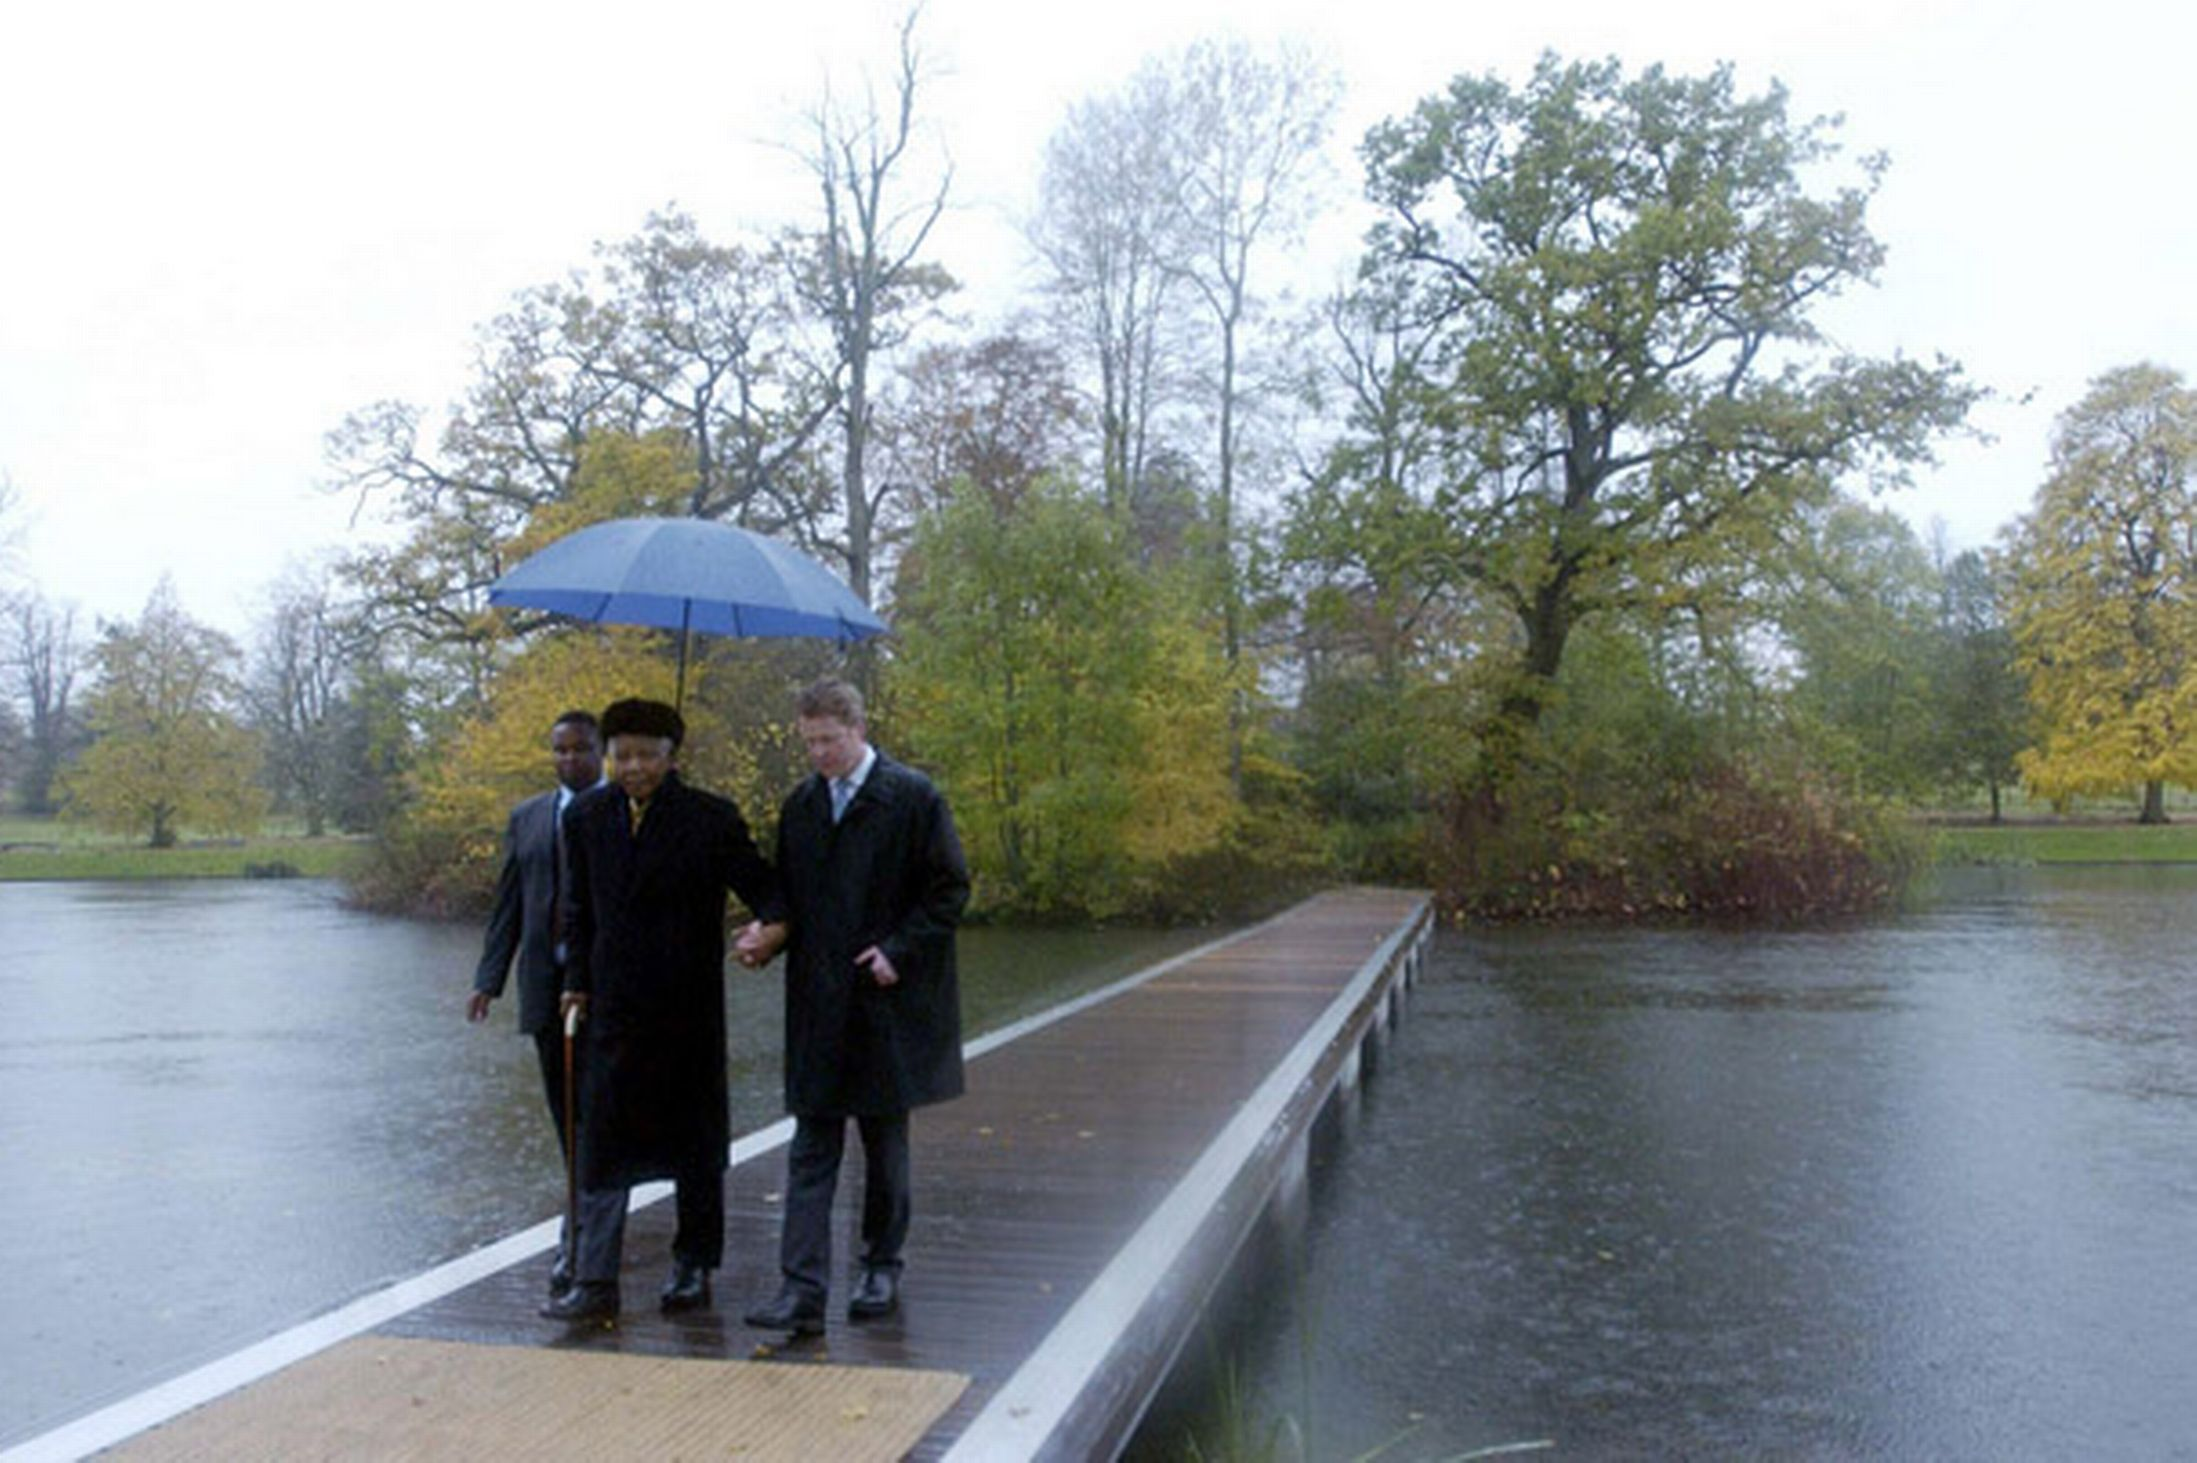 Remembering Diana: Mandela and Earl Spencer walk, across a pontoon from the island where Diana, Princess of Wales, is buried